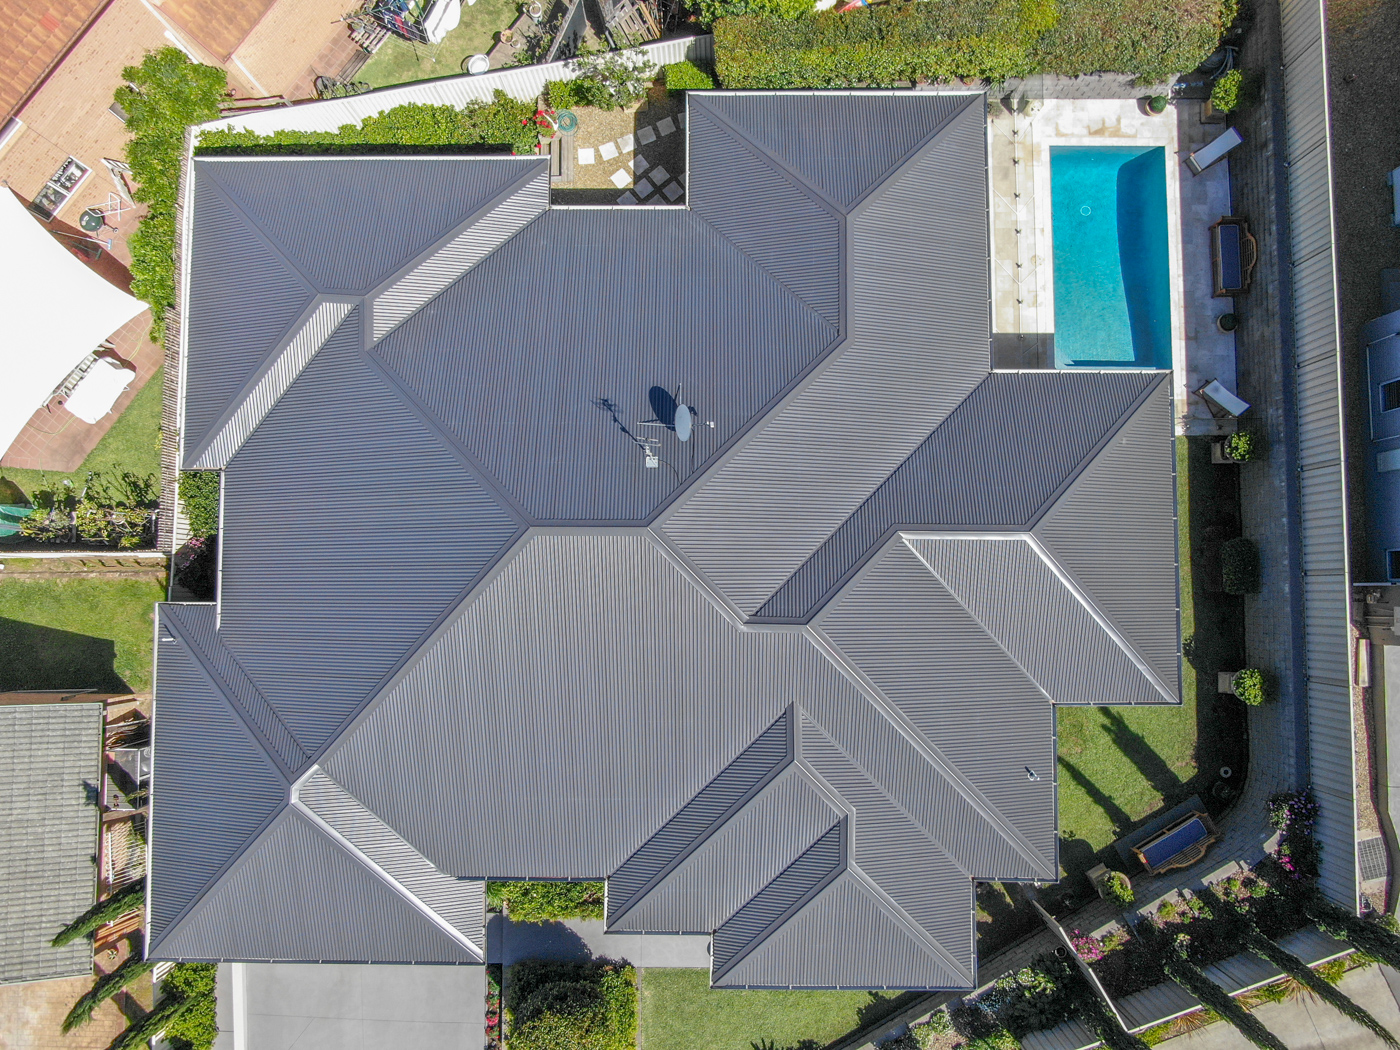 Birdeye view of residential property roof in Colorbond Ironstone.